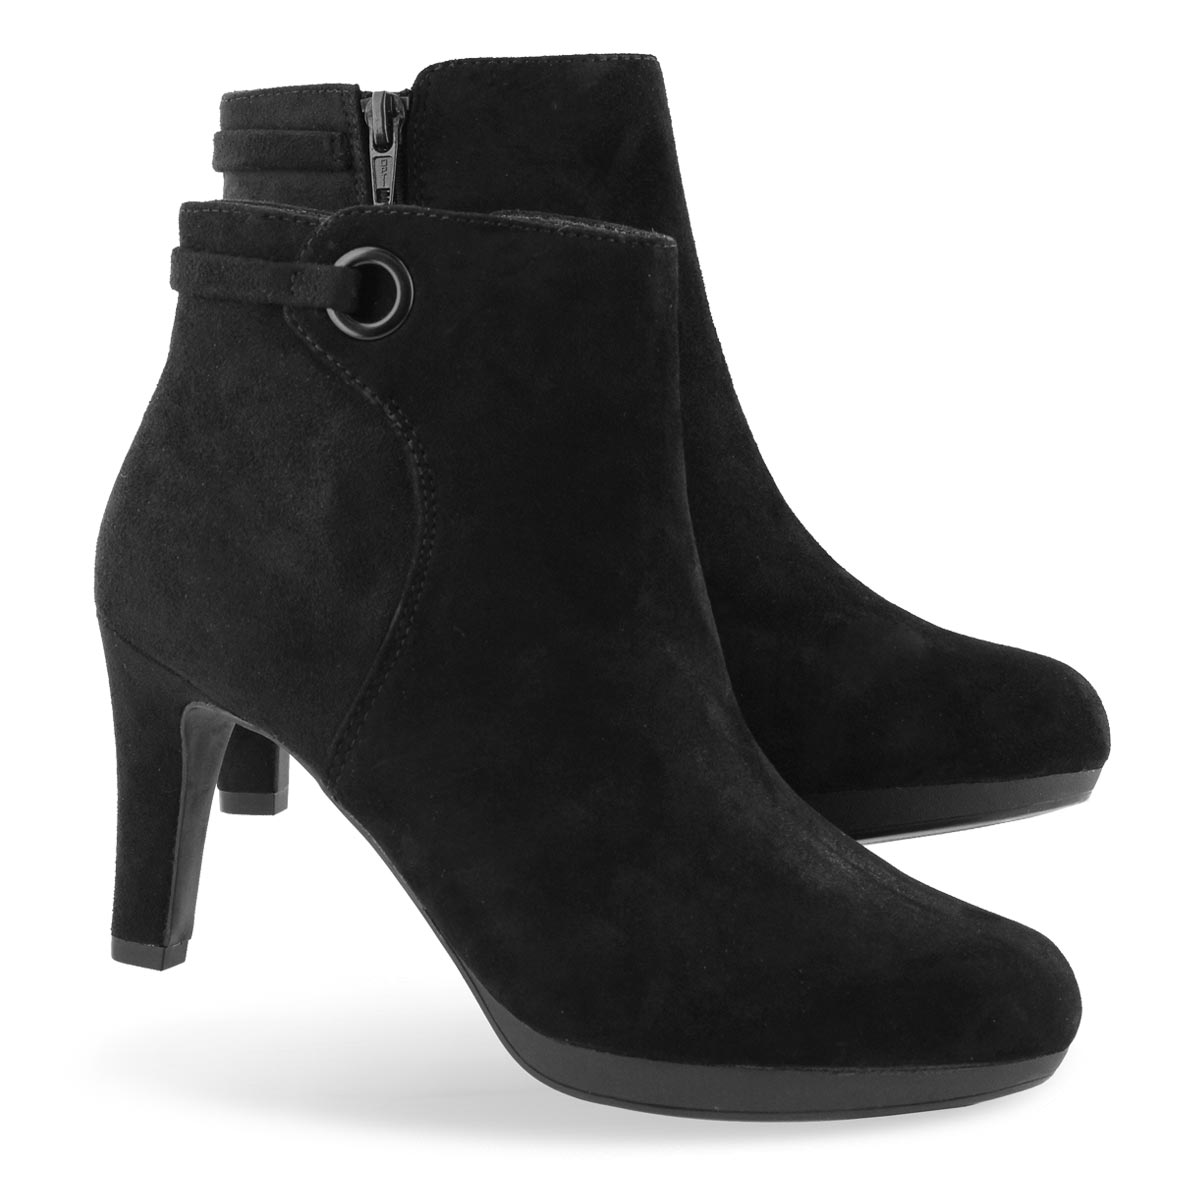 Lds Adriel Mae blk suede dress bootie